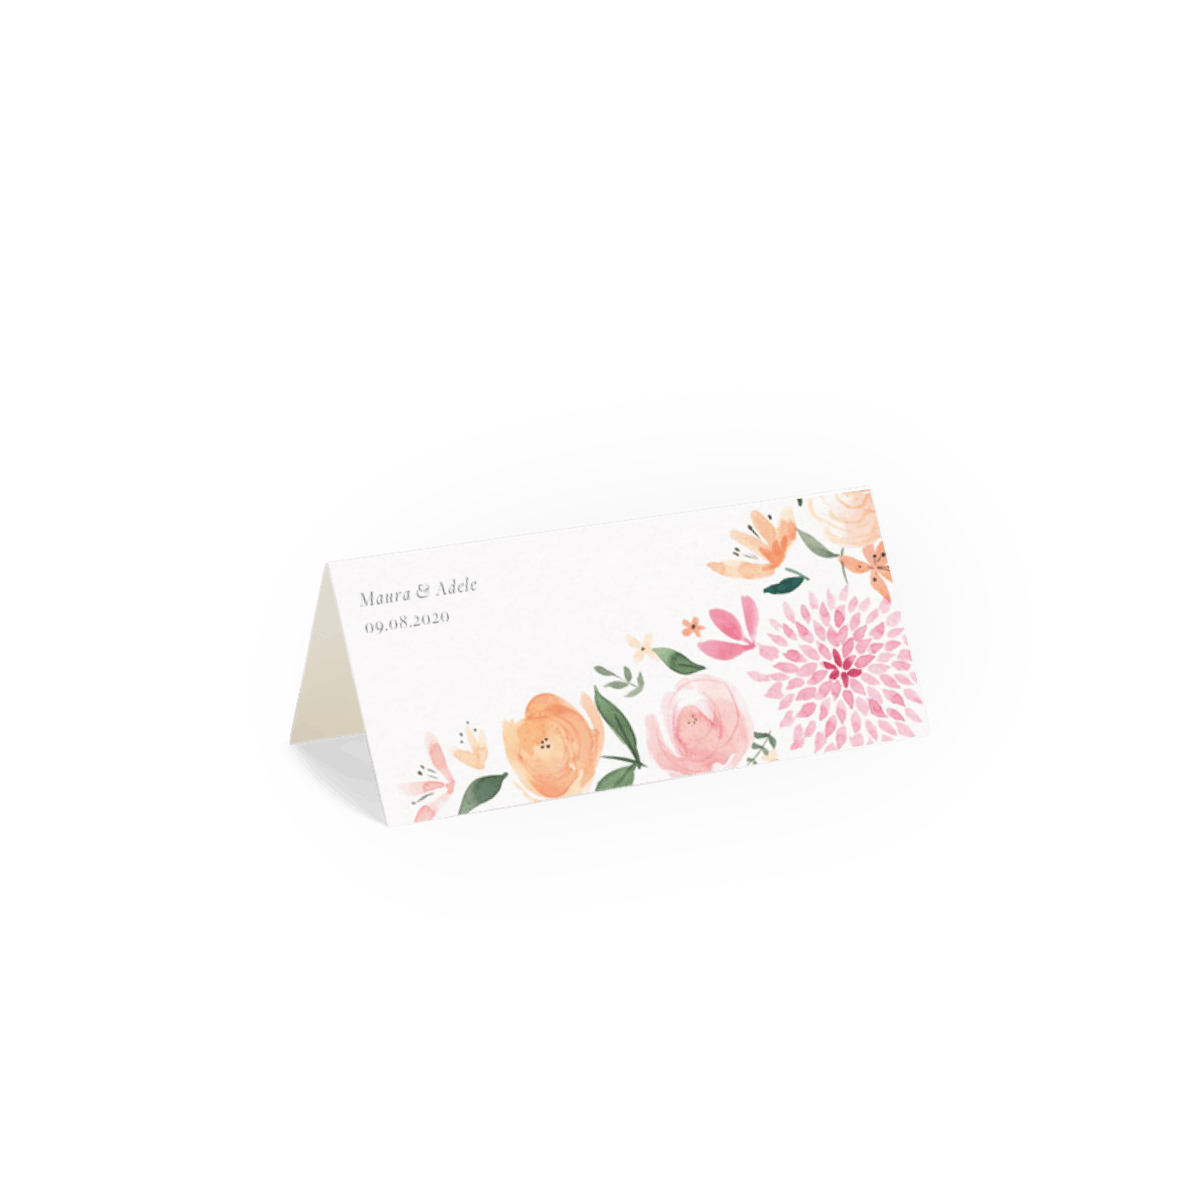 Https%3a%2f%2fwww.papier.com%2fproduct image%2f81179%2f15%2fdahlia and ranunculus 19432 back 1561641278.png?ixlib=rb 1.1